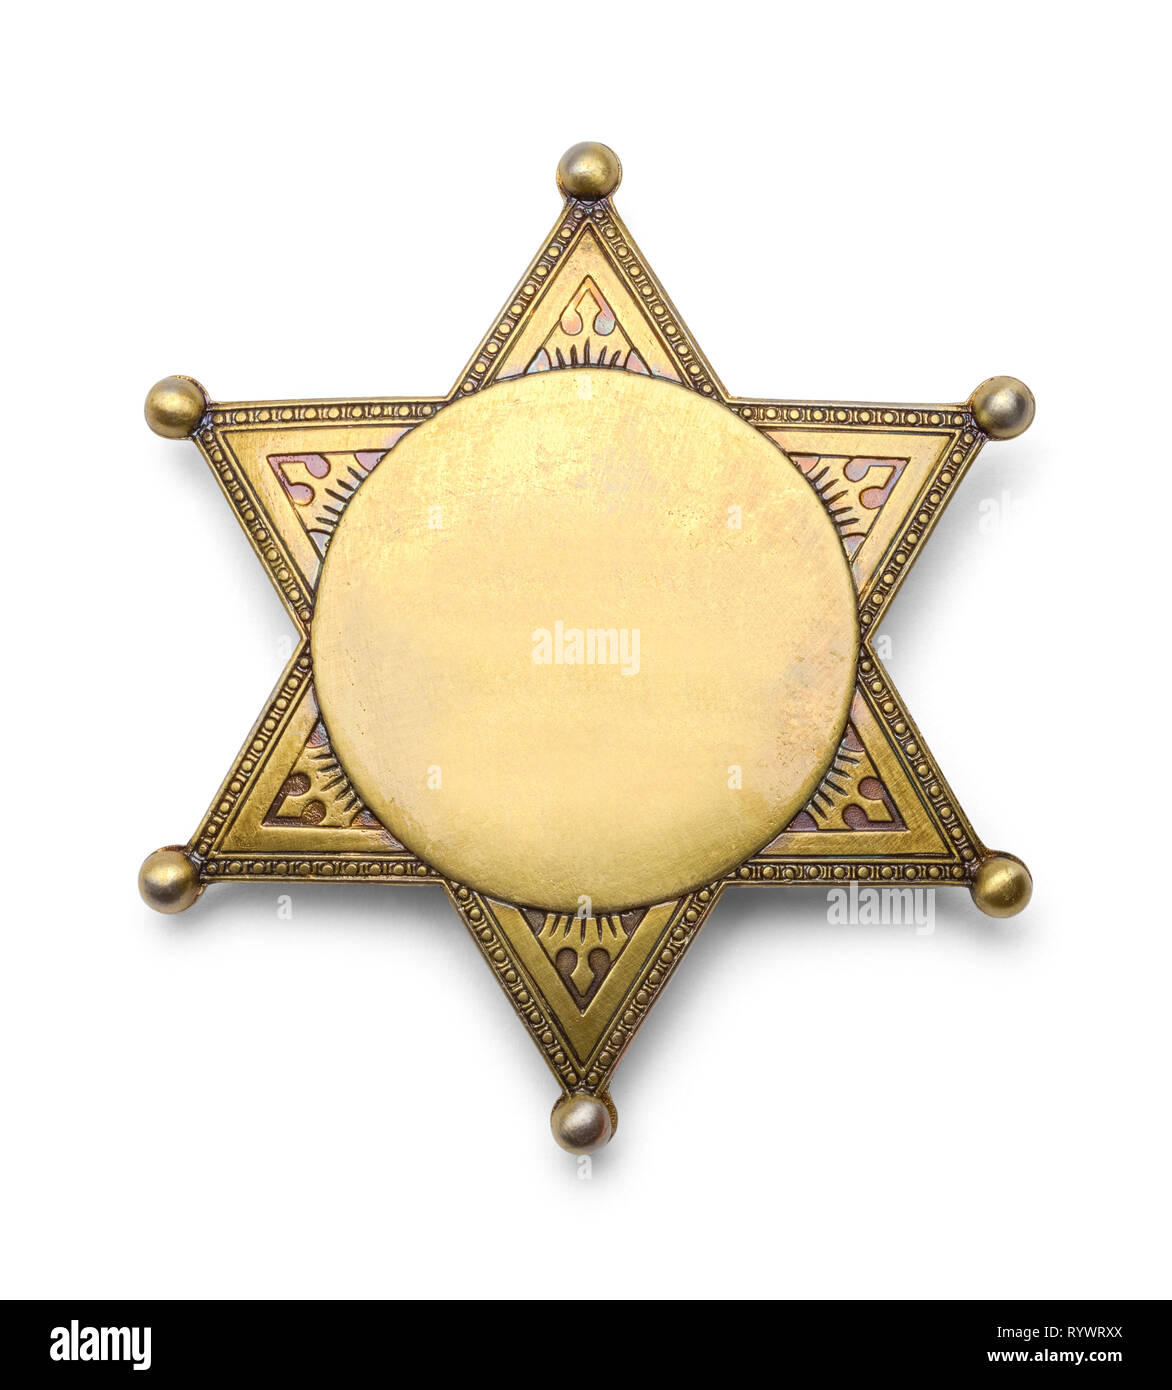 Old West brass star Lawman Police Badge: Deluxe Deputy Sheriff